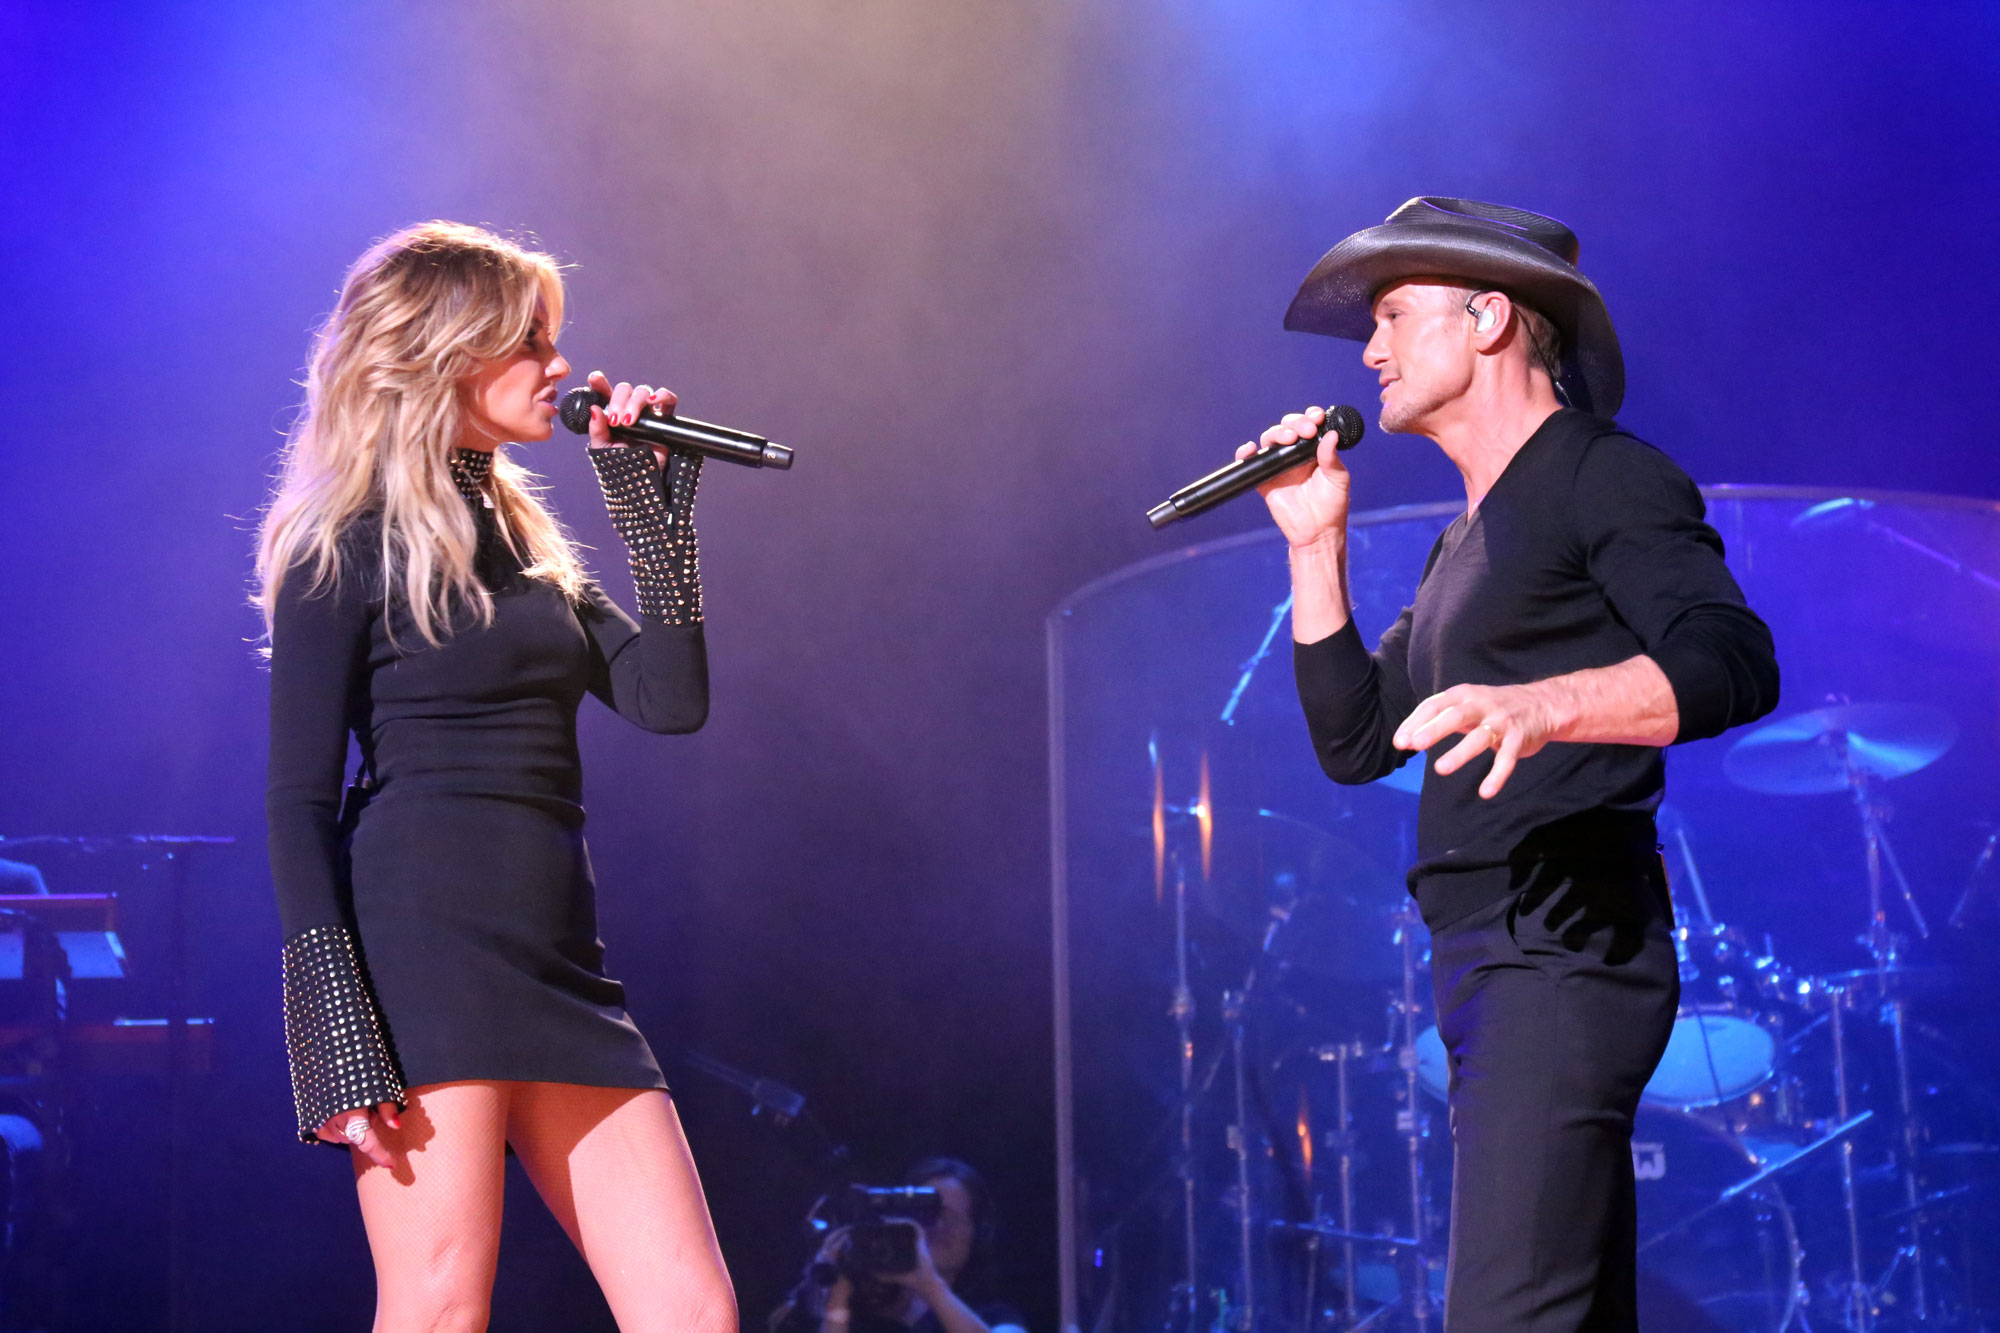 tim and faith's concert last night announcing their new tour